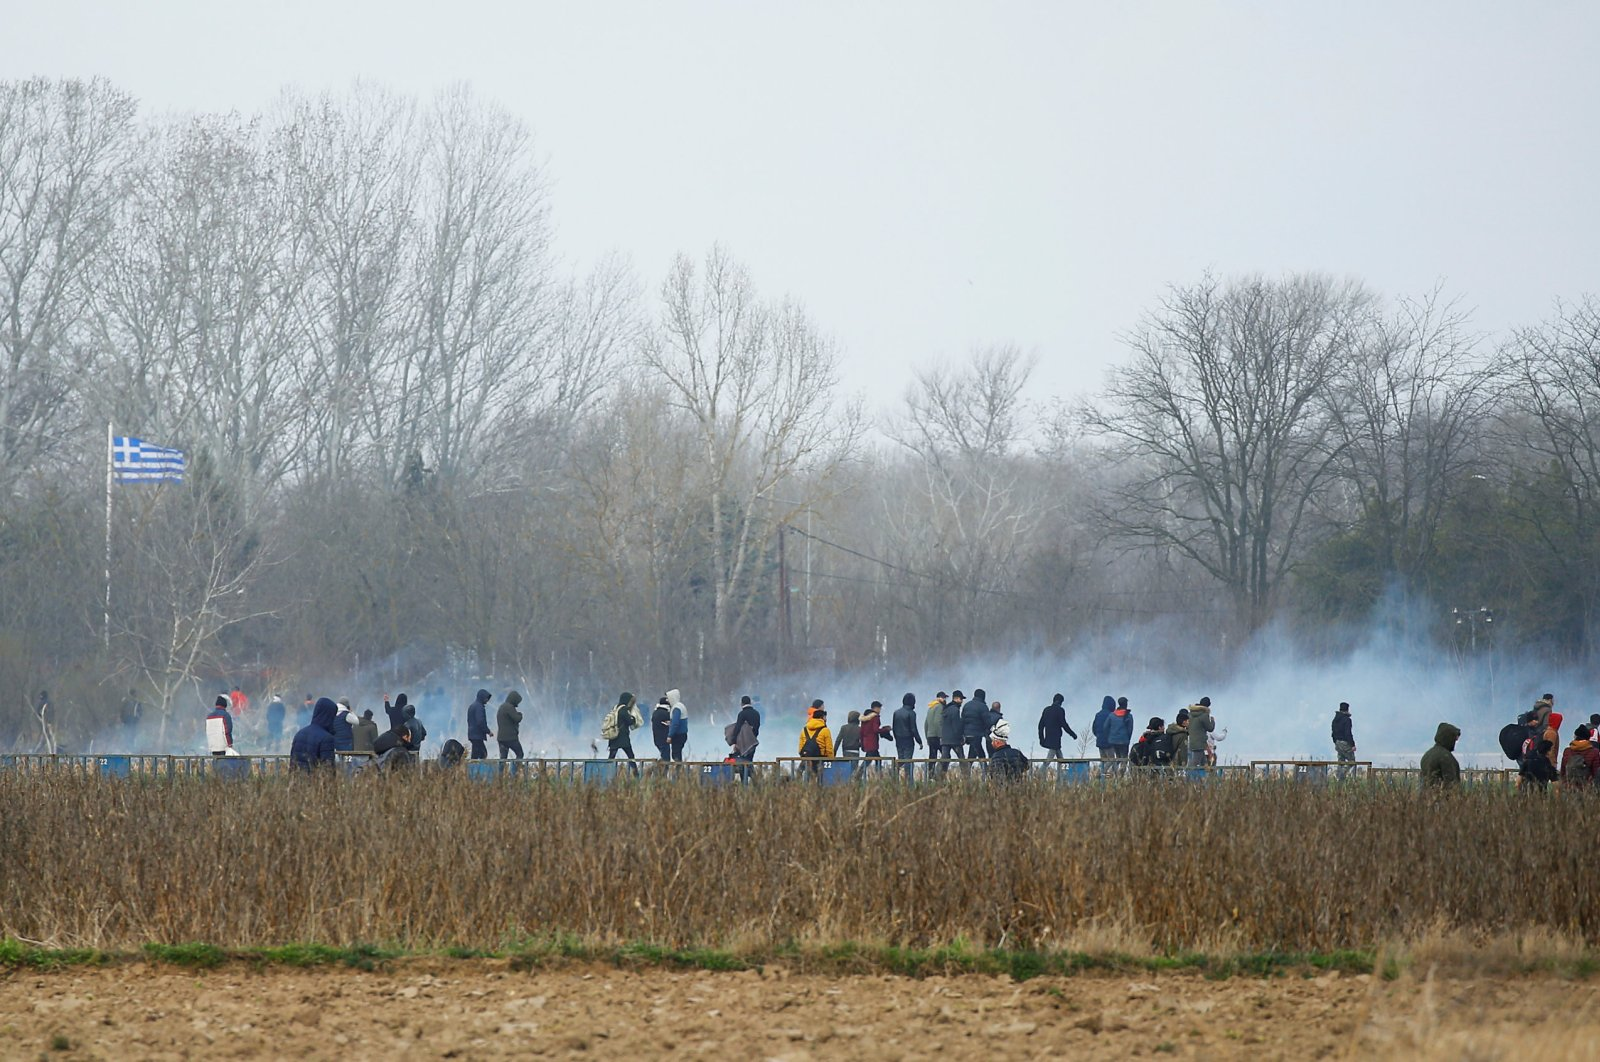 Tear gas thrown by police floats in the air among migrants near Turkey's Pazarkule border crossing with Greece's Kastanies, near Edirne, Turkey, March 4, 2020. (Reuters Photo)